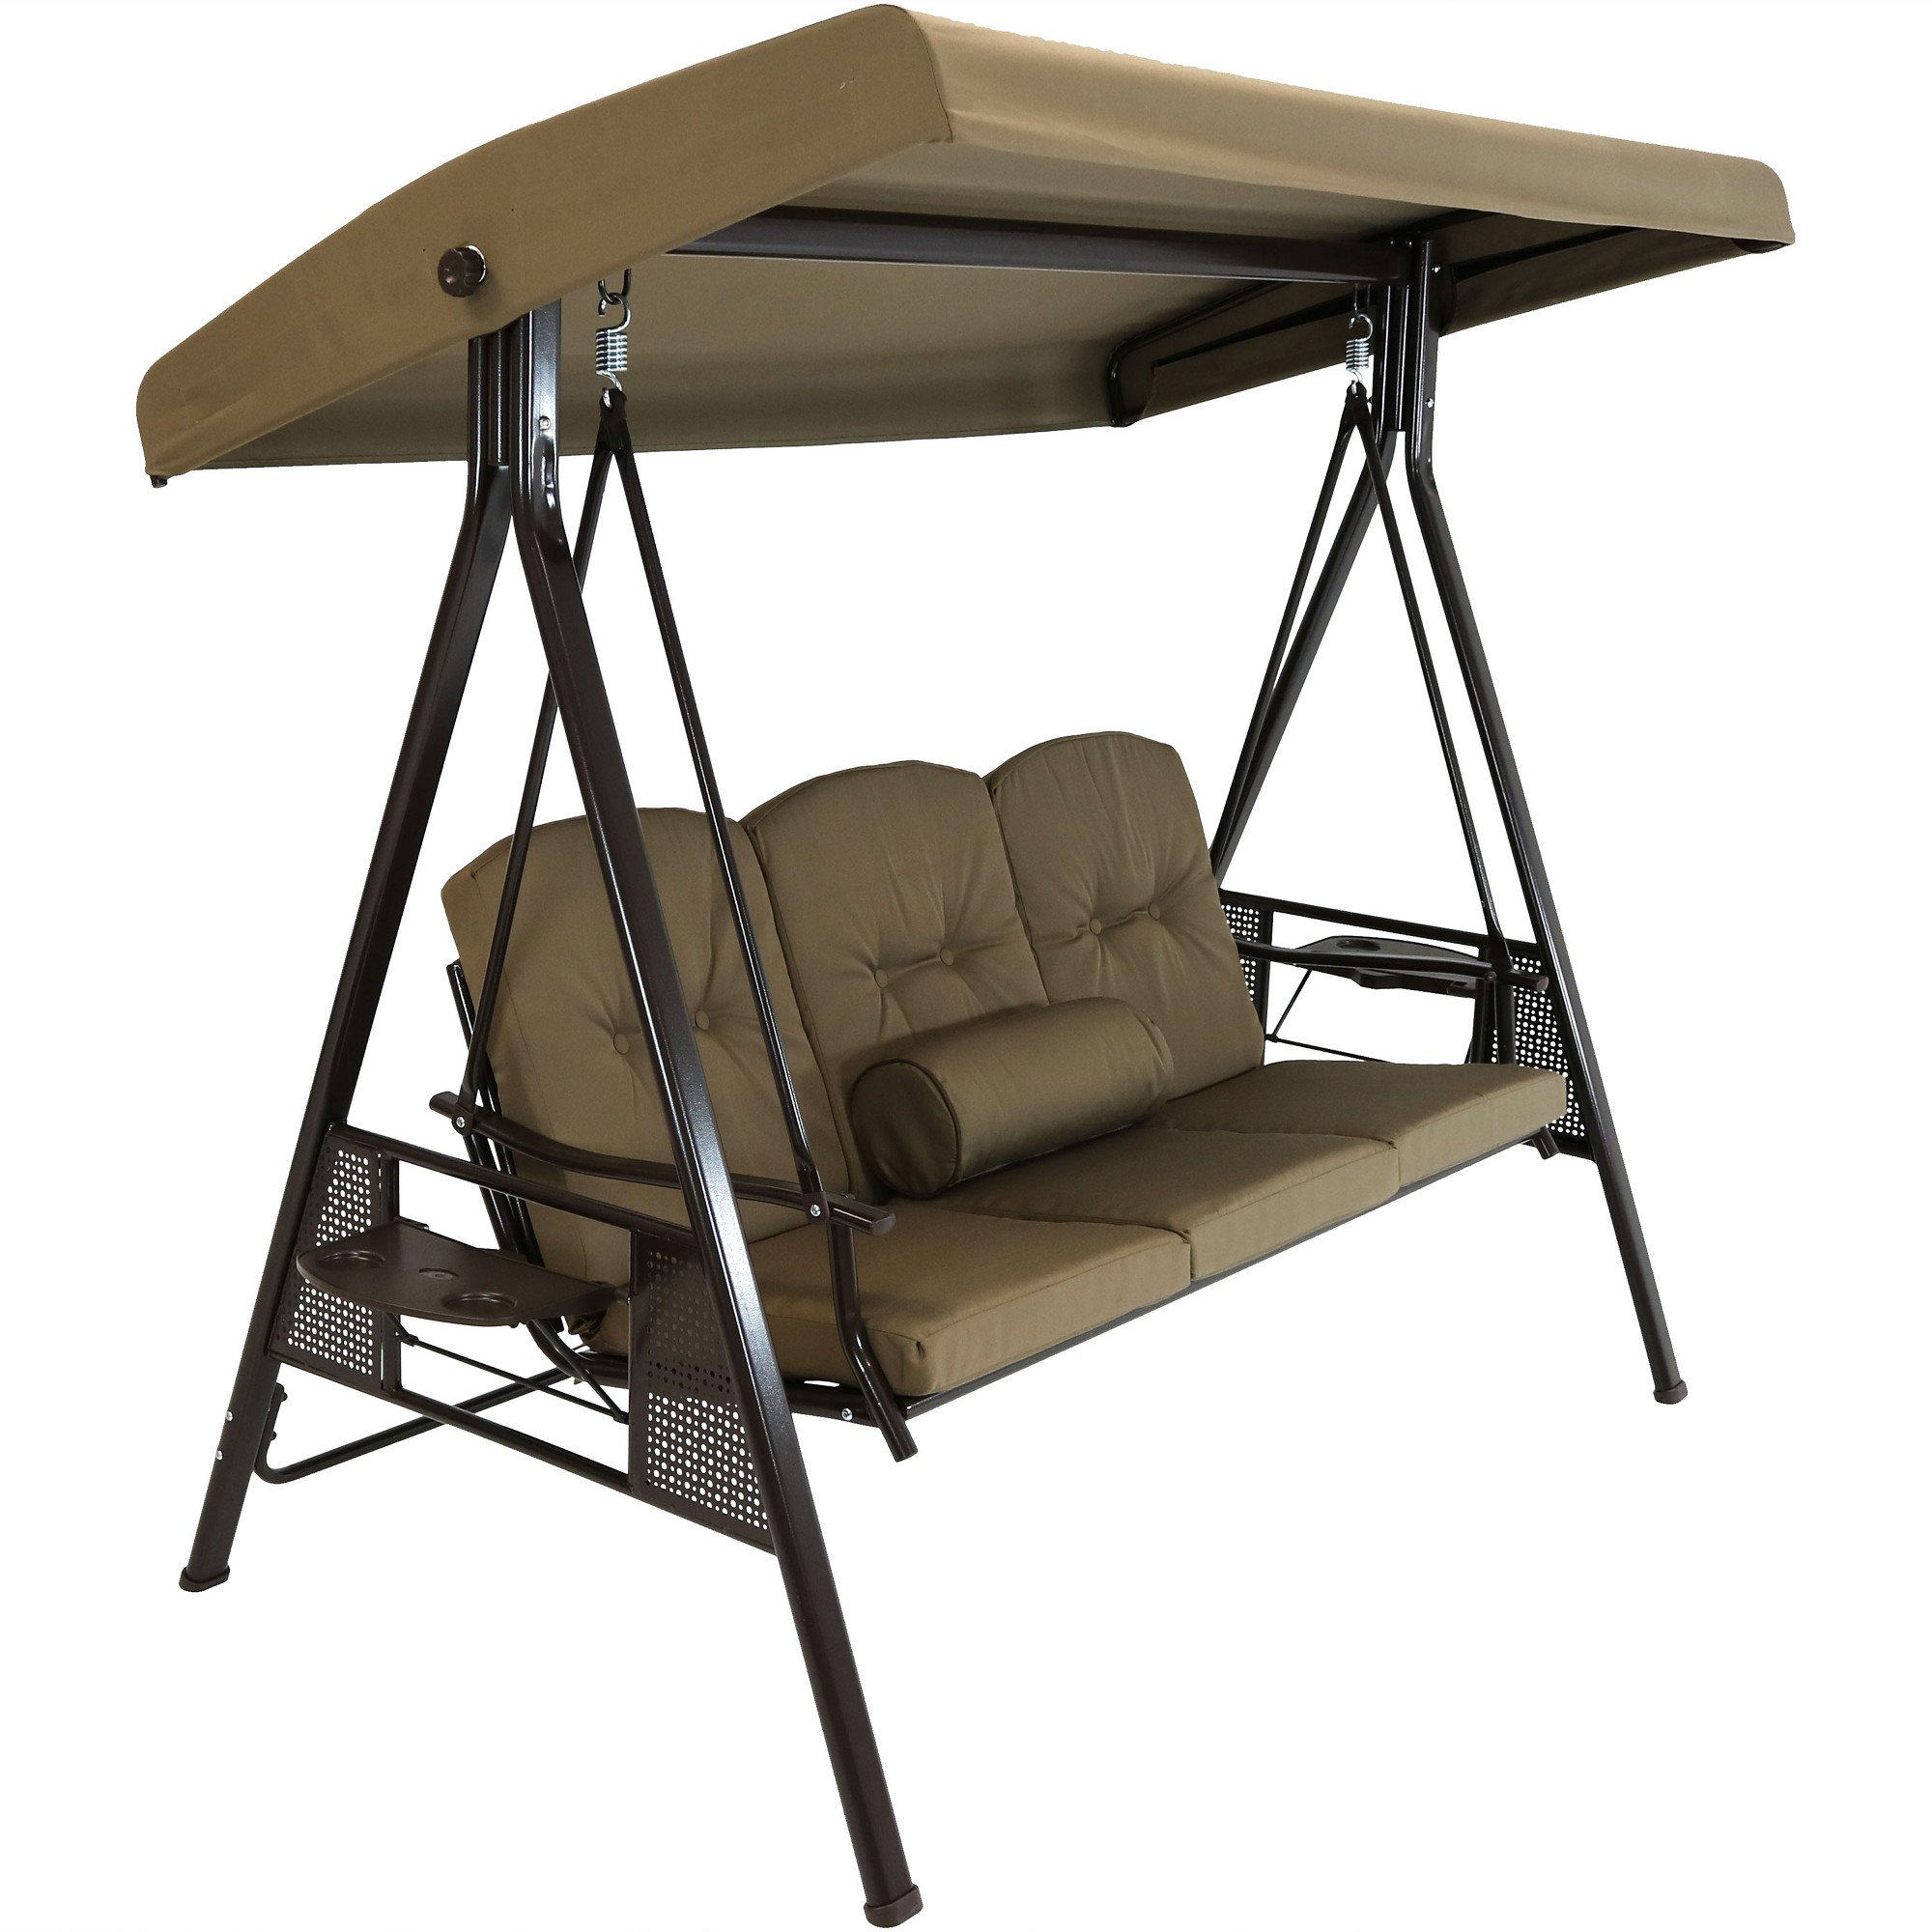 3 Person Steel Frame Canopy Patio Swing With Side Tables Throughout Canopy Patio Porch Swing With Stand (View 10 of 25)